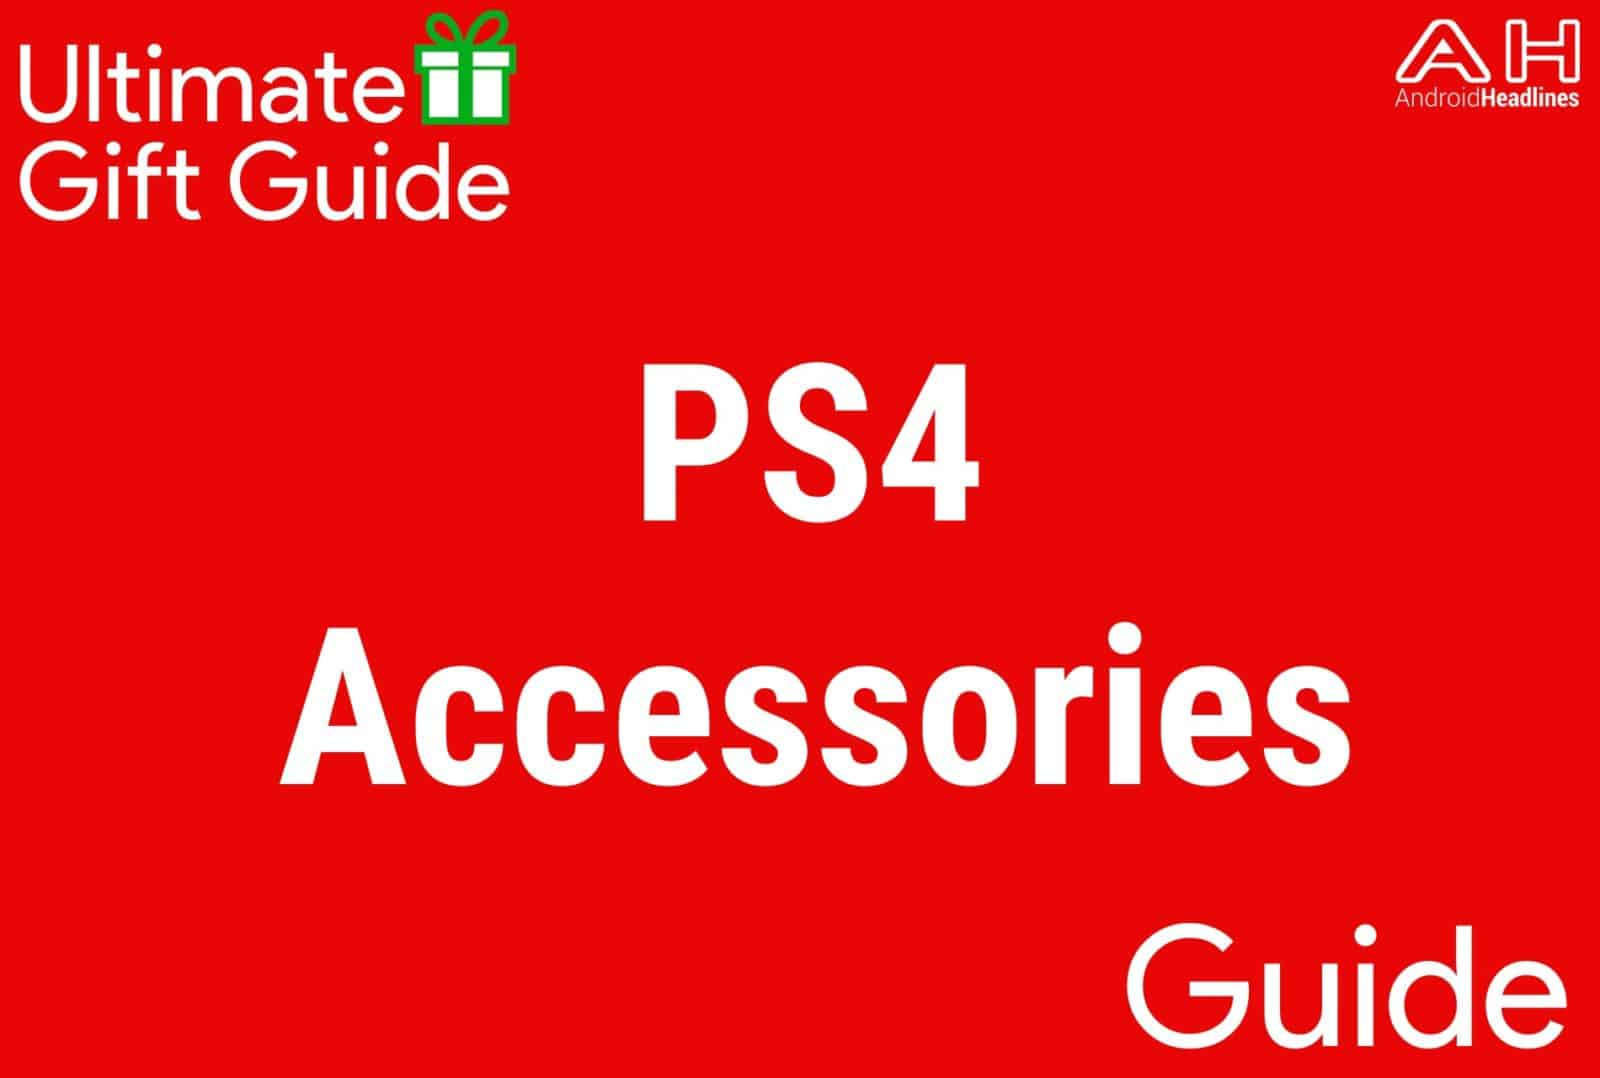 PS4 Accessories - Gift Guide 2015